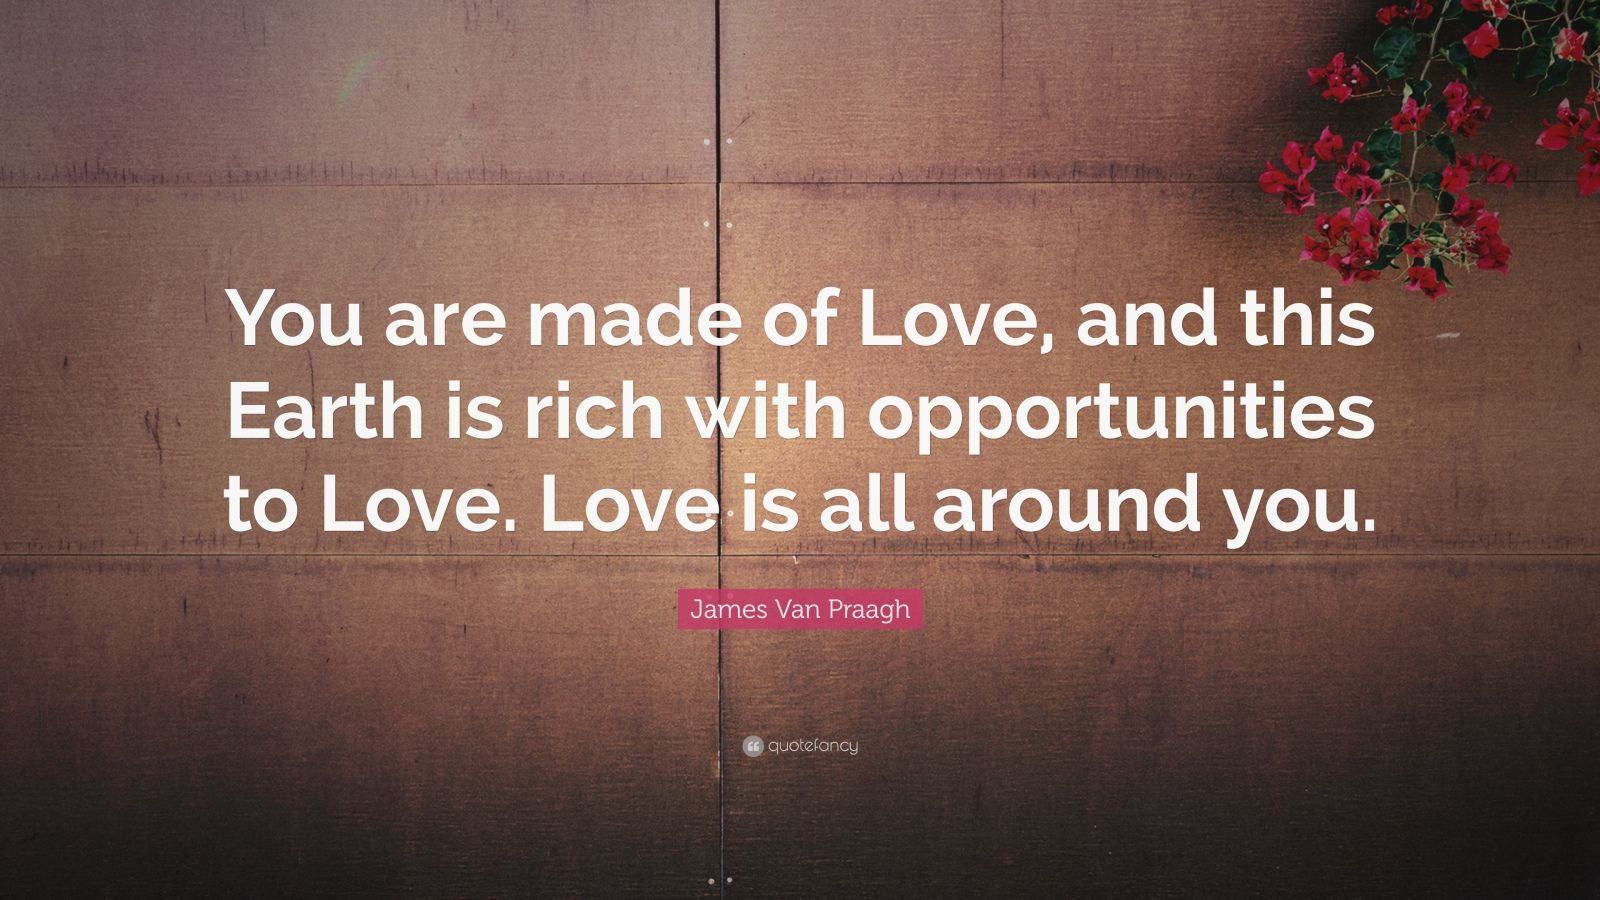 Love Is All Around Wallpaper : James Van Praagh Quote: ?You are made of Love, and this Earth is rich with opportunities to Love ...